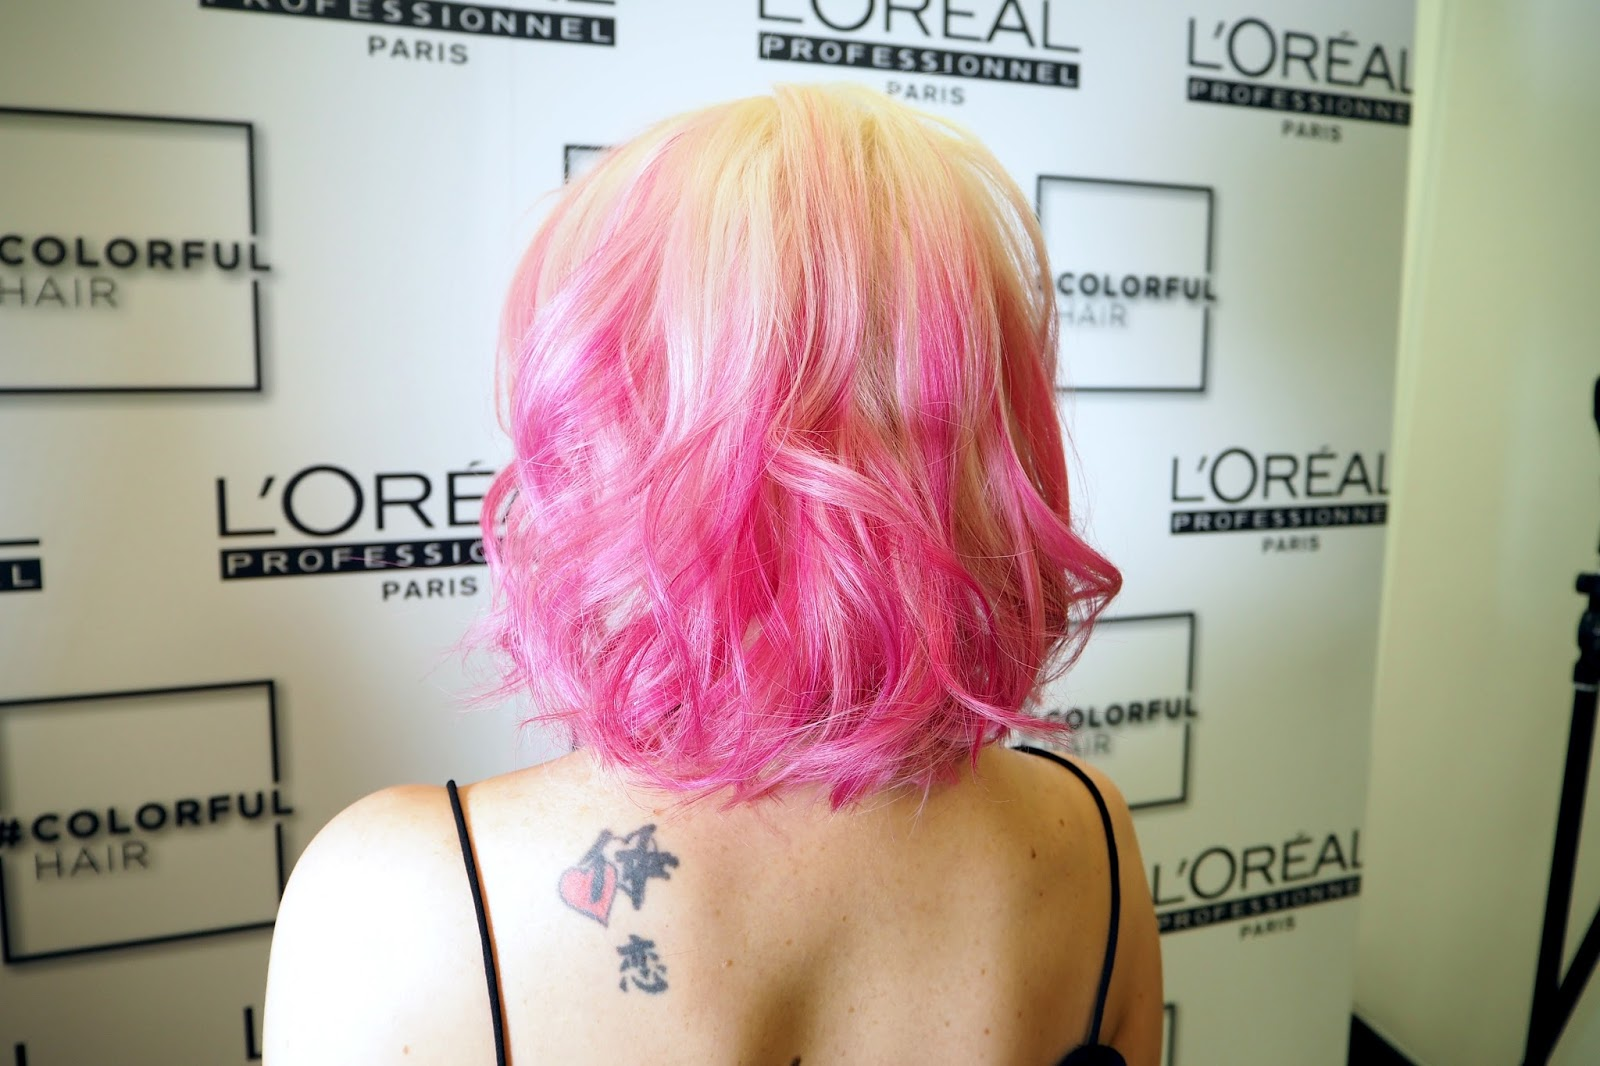 Pink hair by Loreal Professionel #MyColorful hair, pink ombre